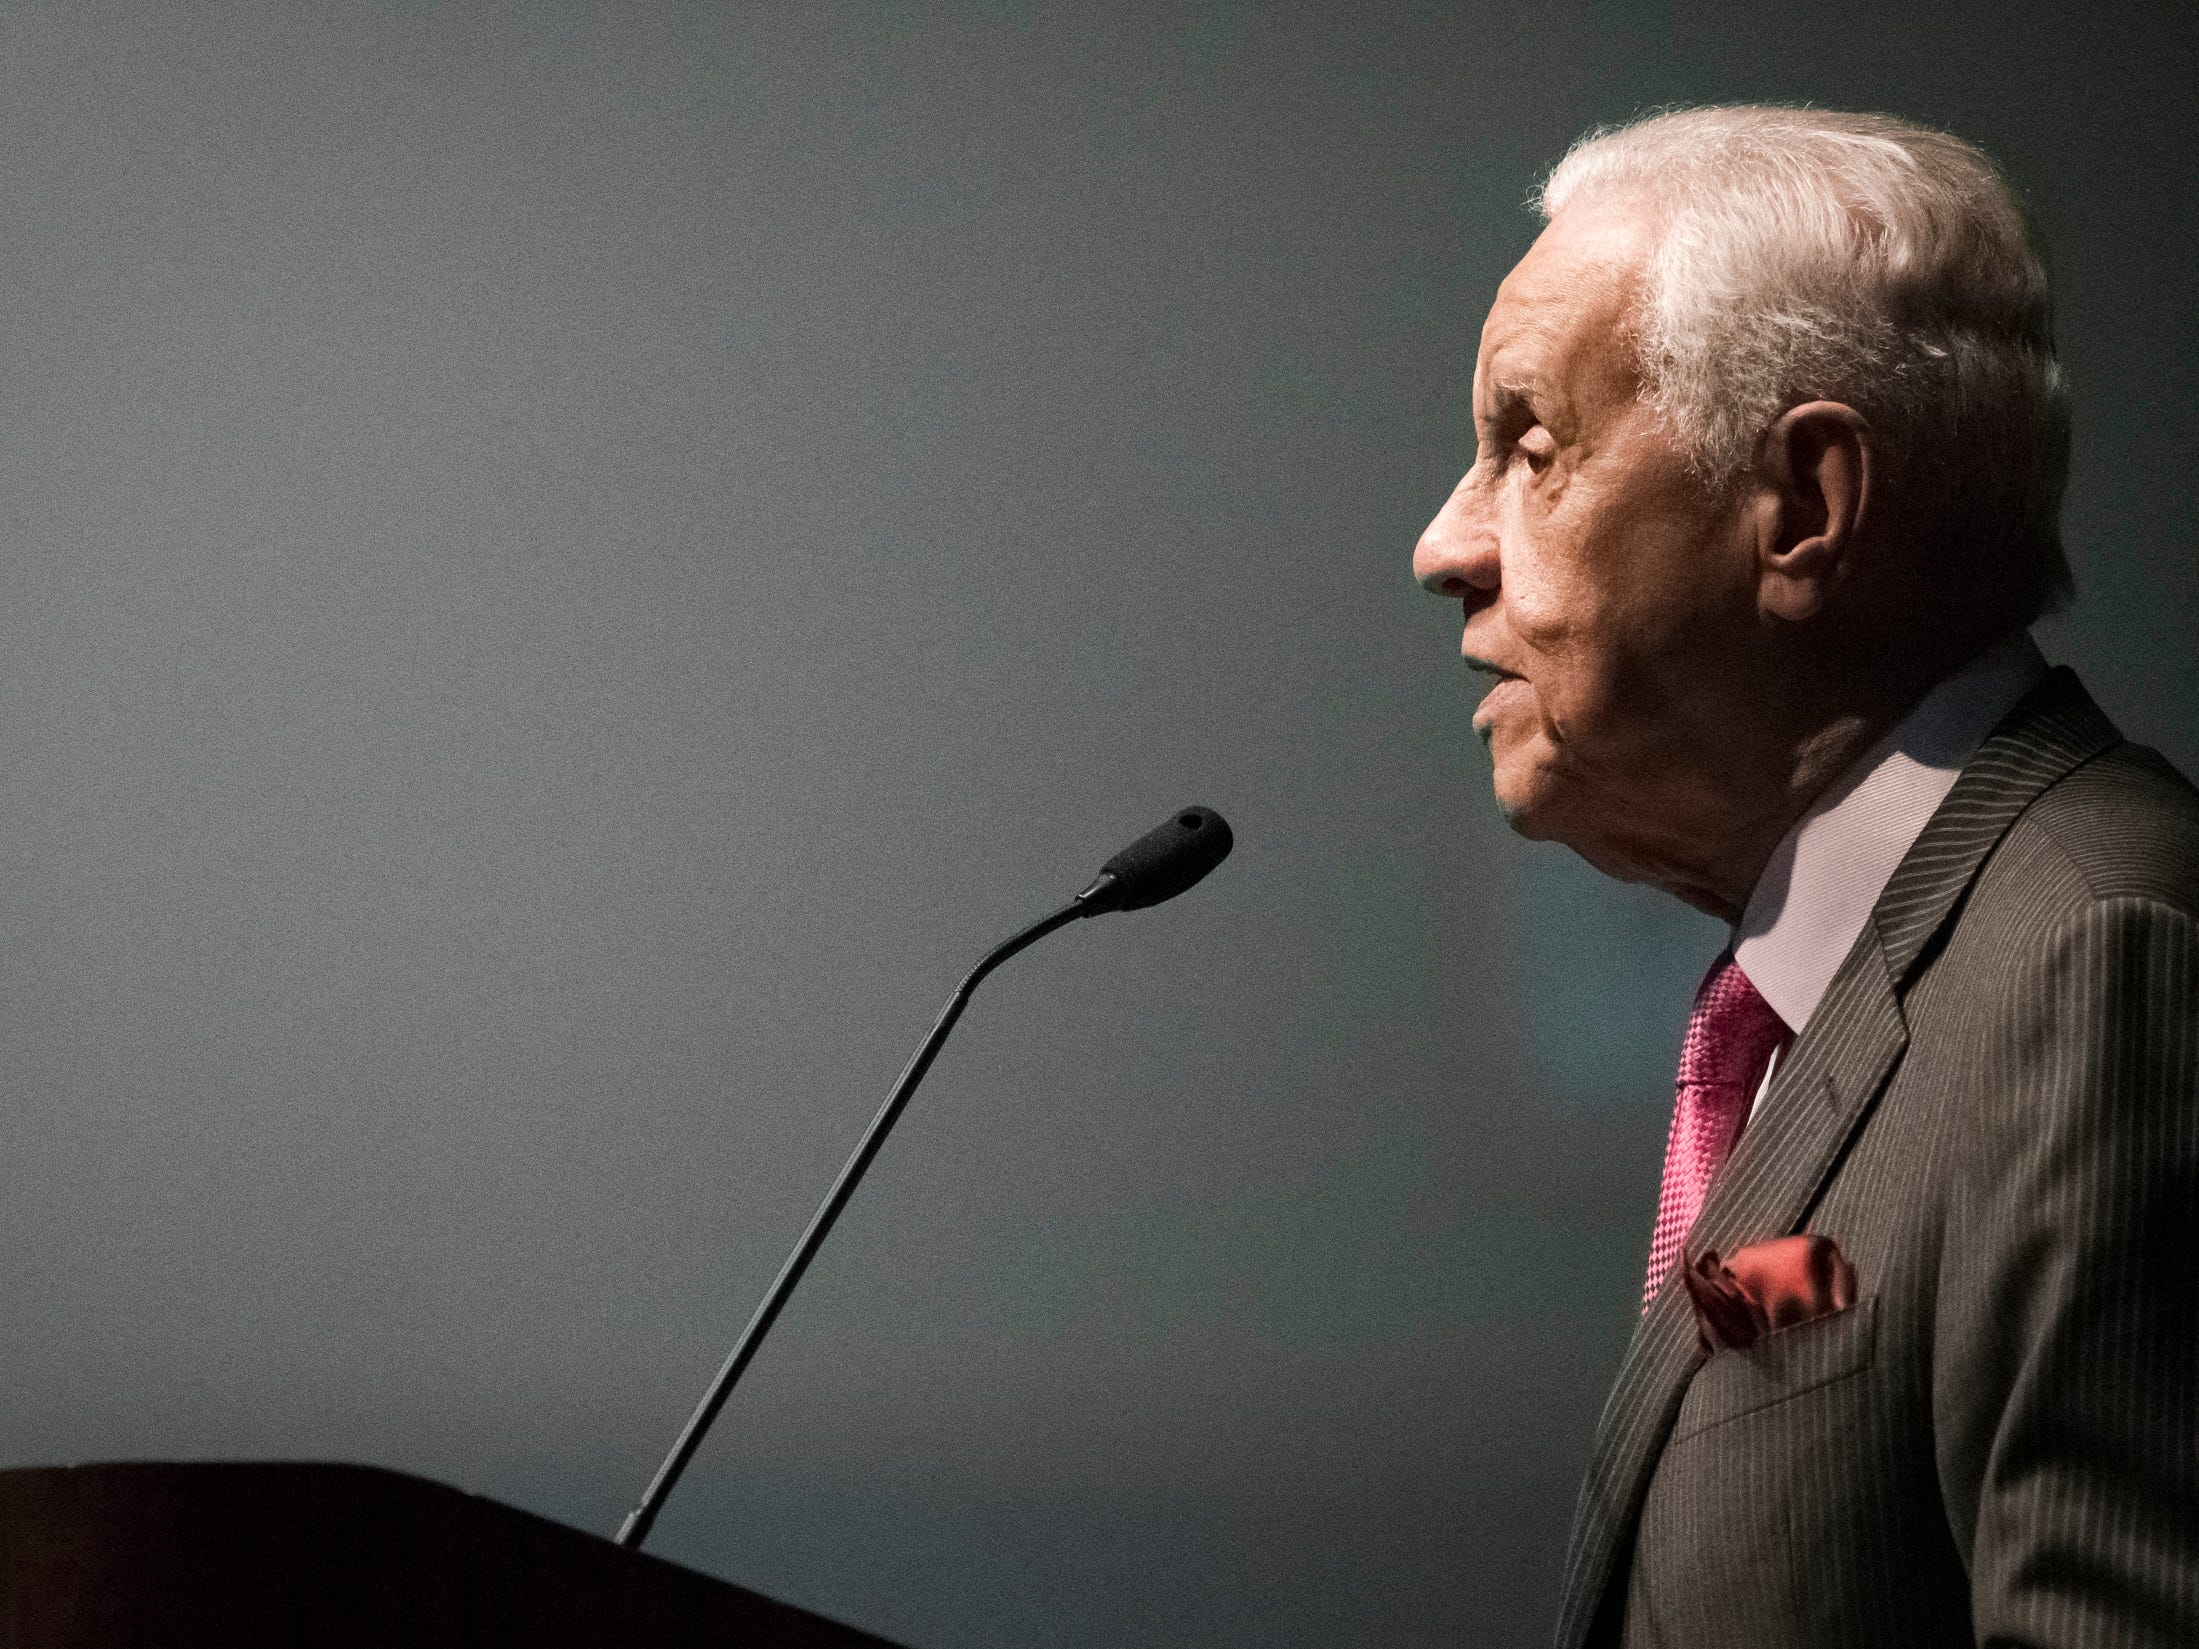 Former Virginia Governor L. Douglas Wilder speaks Monday, Jan. 21, 2019, during the 34th Annual MLK Holiday Luncheon Celebration at The Lansing Center in downtown Lansing, Michigan.  Wilder was the first elected African American Governor in the US (Virginia - 1990).  He first introduced a bill to have a holiday named for Martin Luther King, Jr..  It took eight years to pass.  Virginia was the first state to have a legislative holiday in Dr. King's honor.  [AP Photo/Matthew Dae Smith/Lansing State Journal]